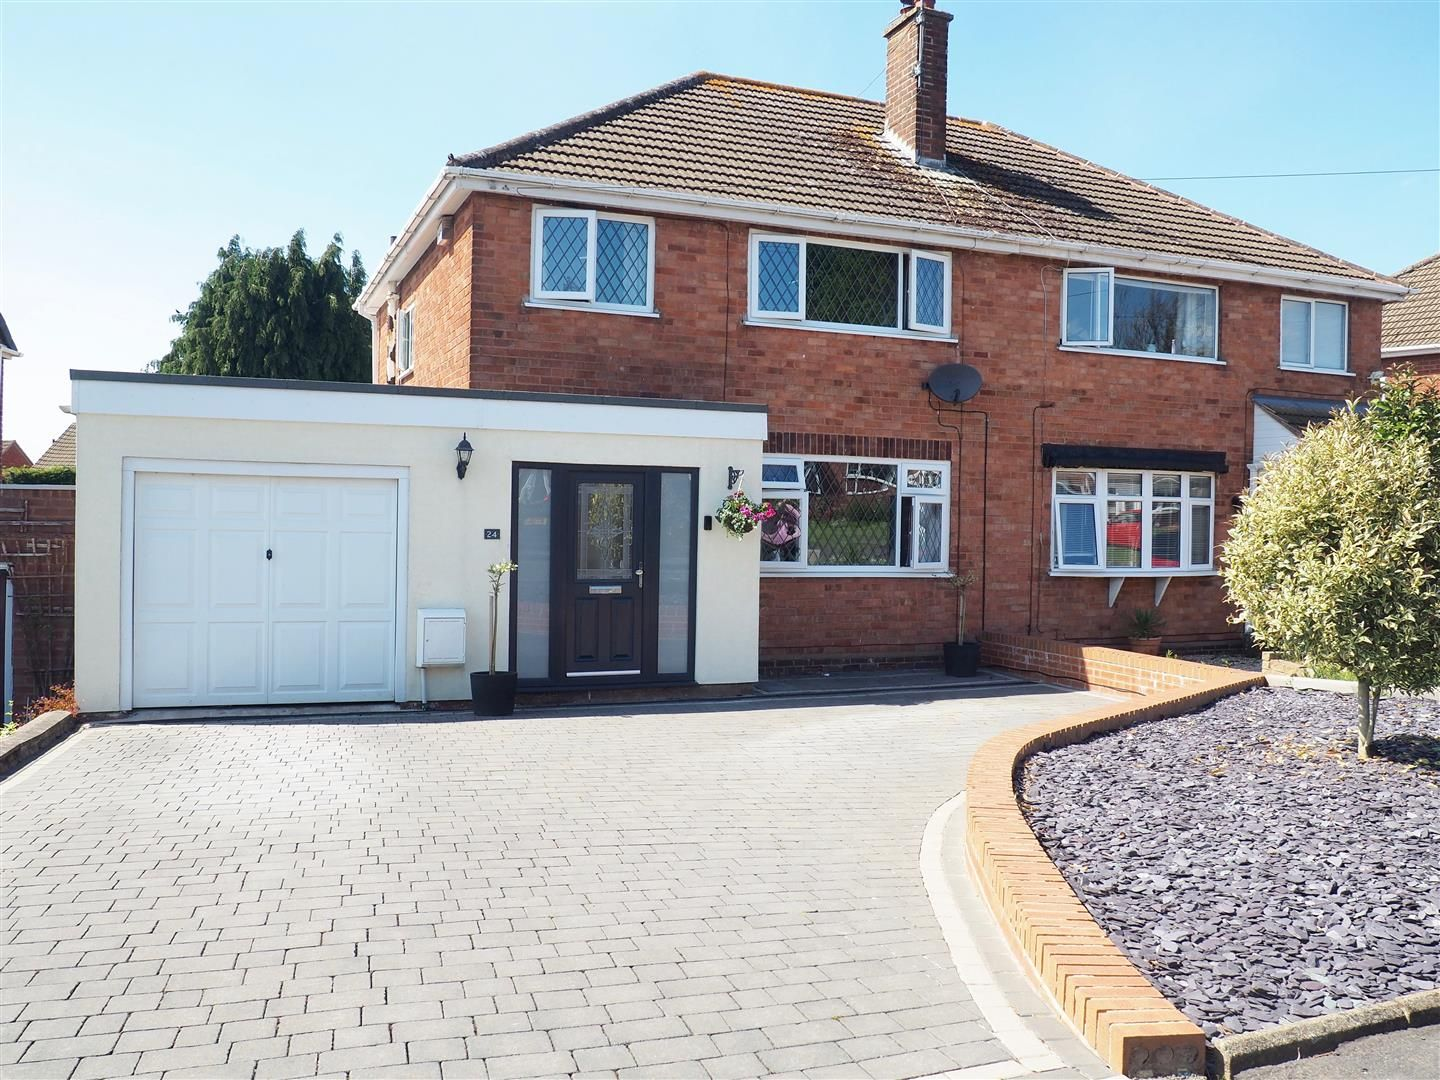 3 bed house for sale, B63